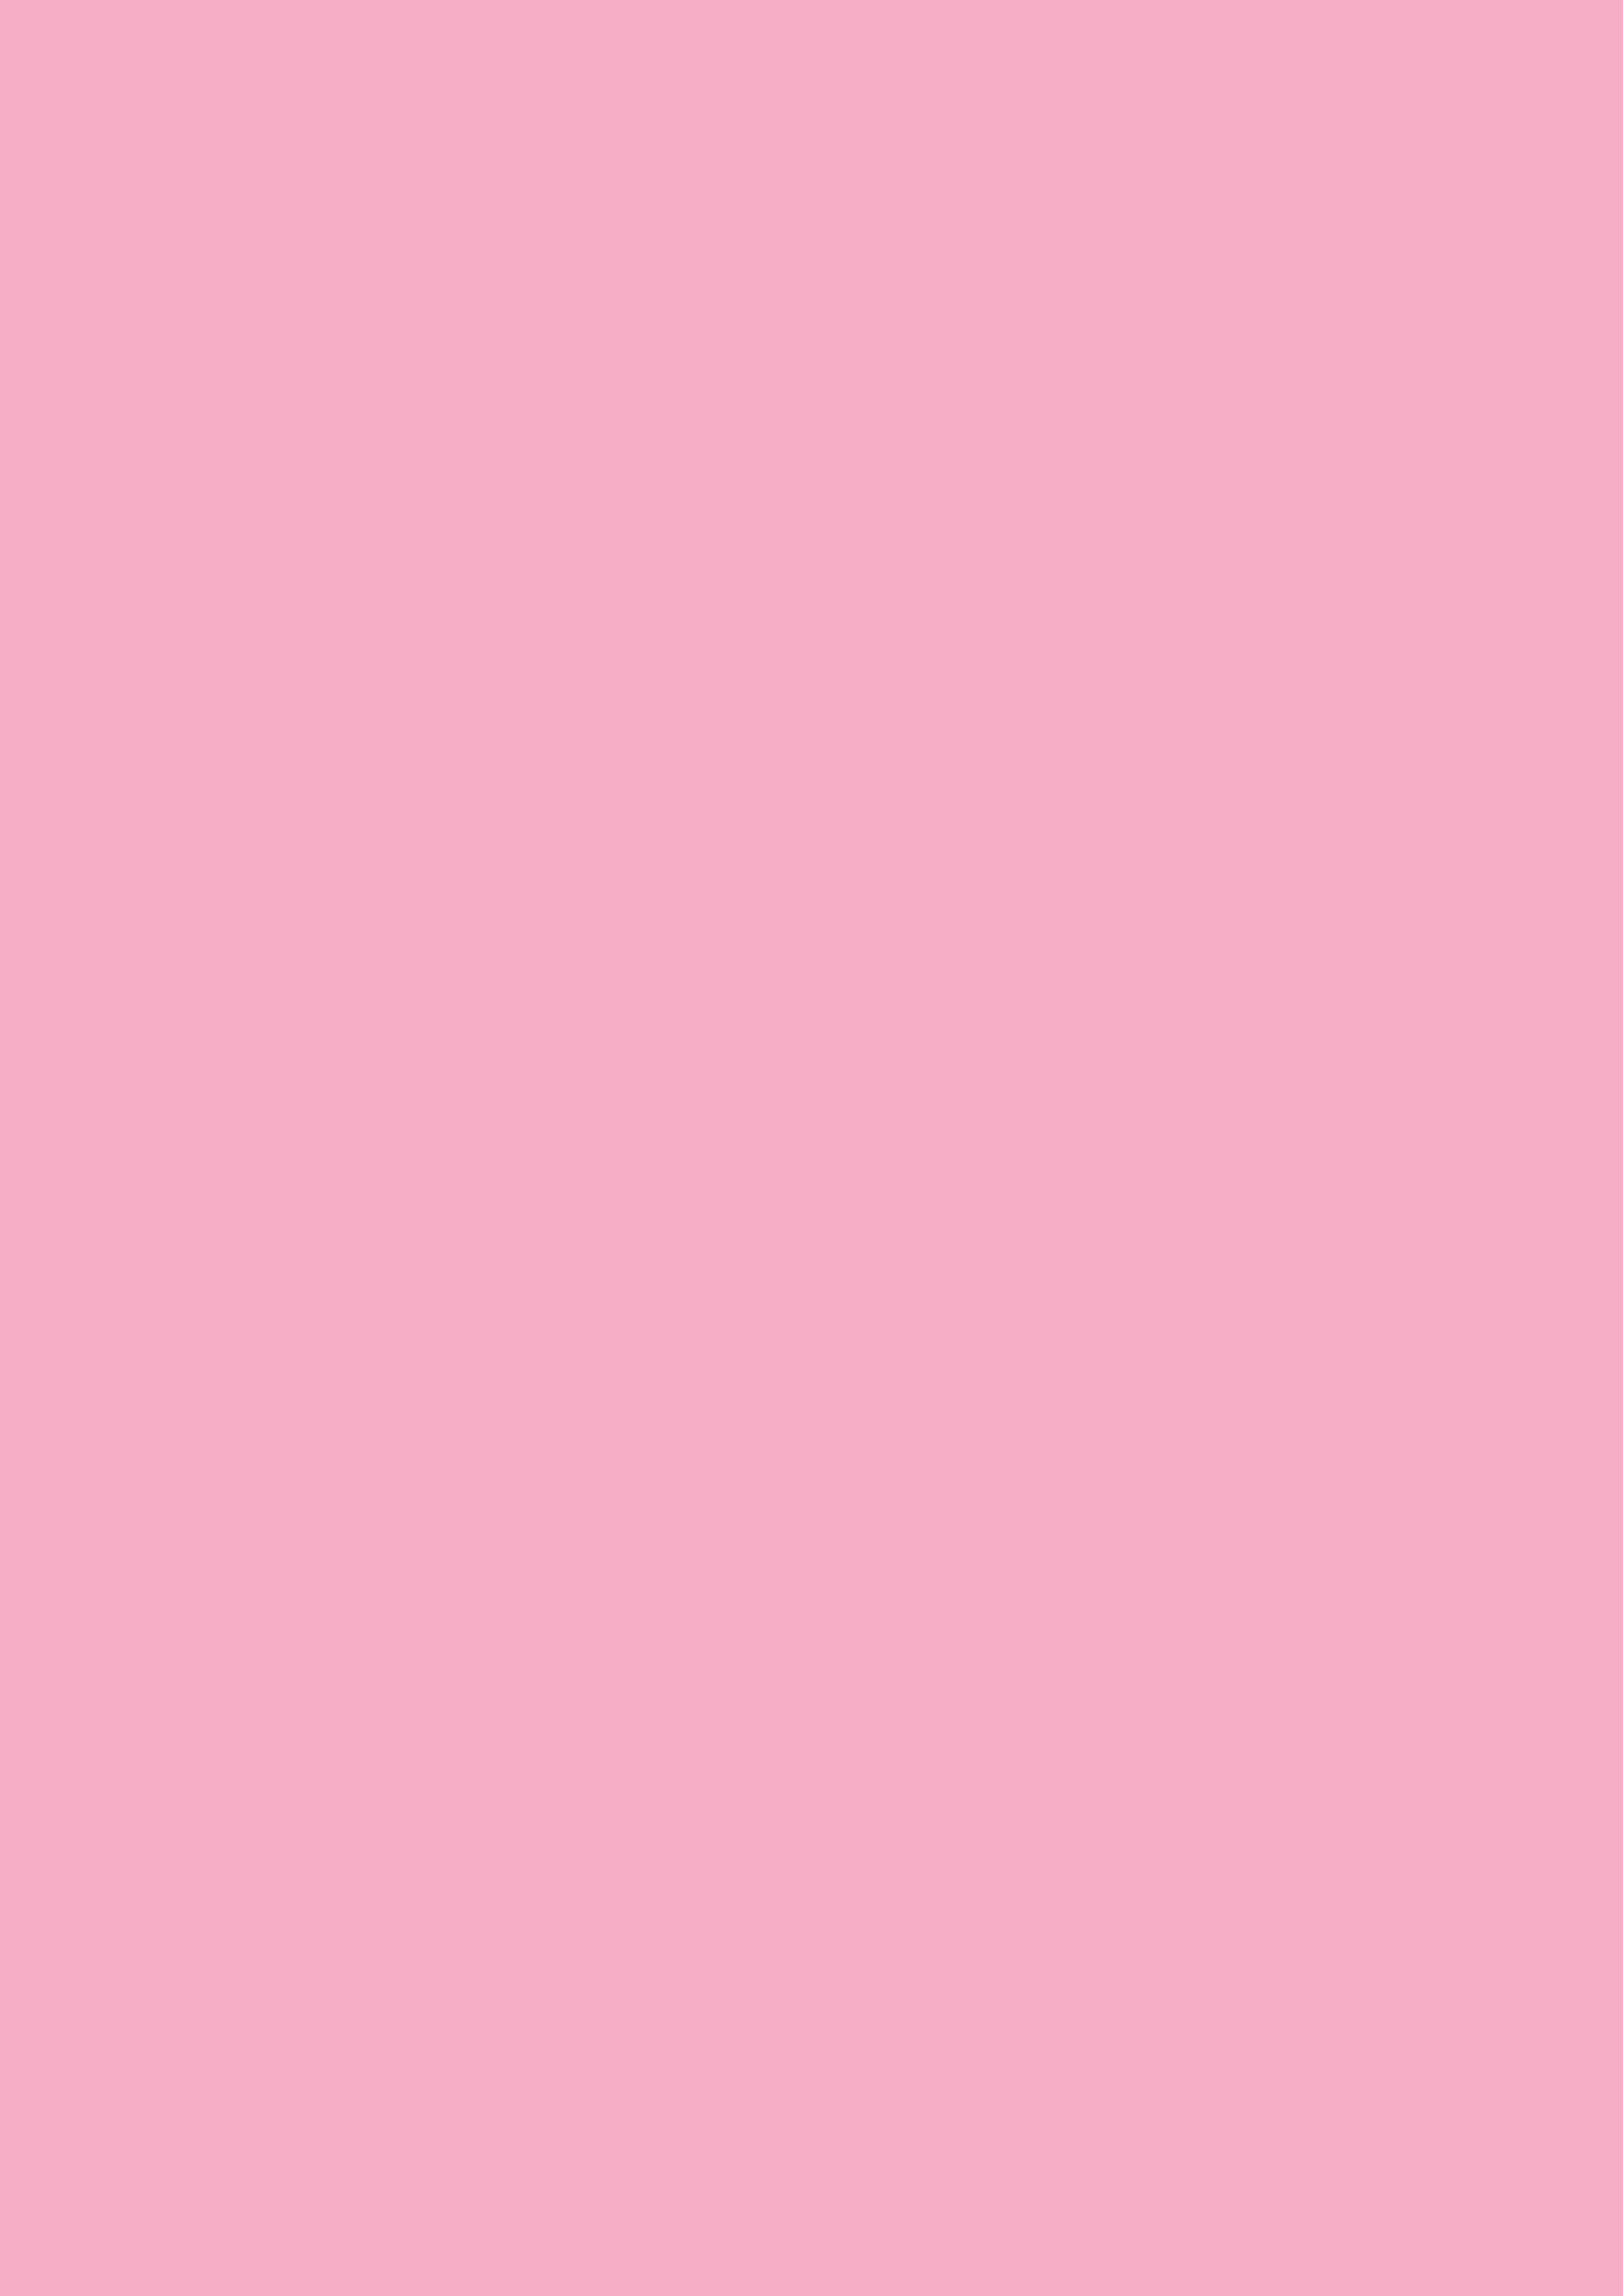 2480x3508 Nadeshiko Pink Solid Color Background